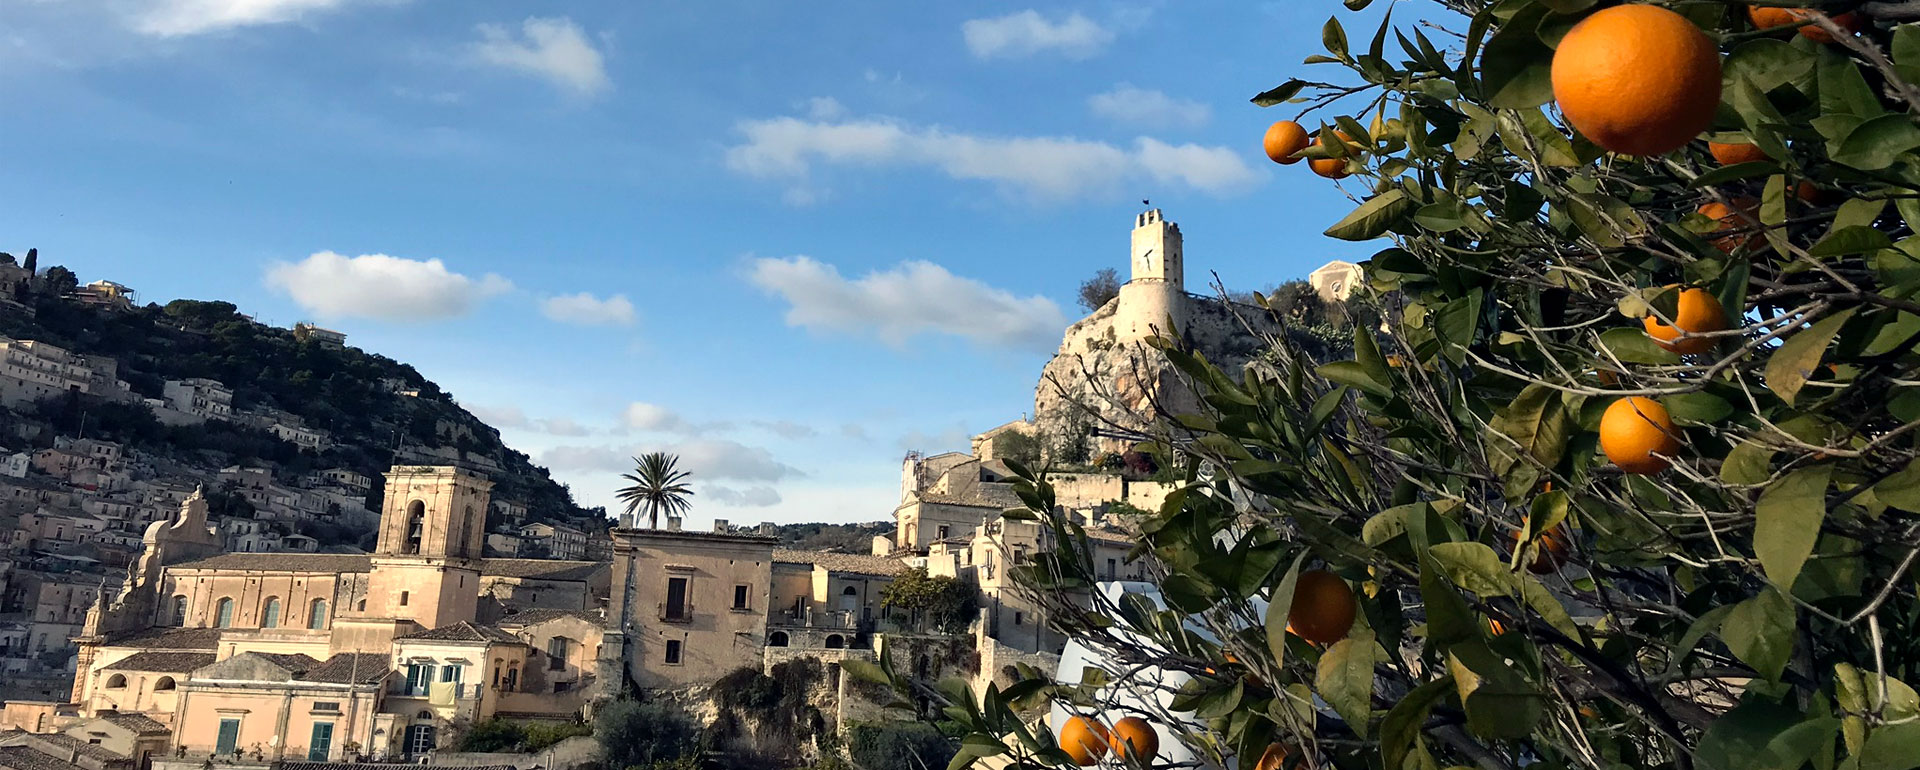 Modica Sicily View from Villa